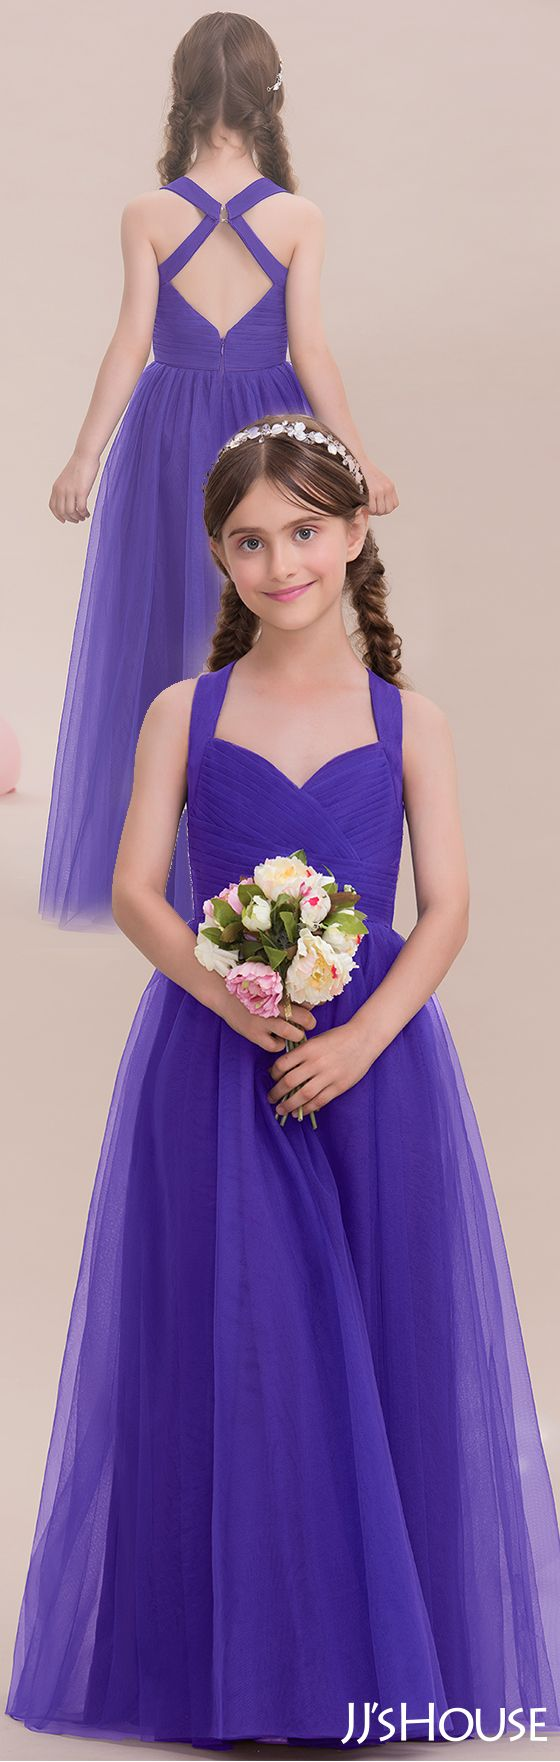 188 best junior bridesmaid dresses images on pinterest a bright nice dress jjshouse junior bridesmaid ombrellifo Choice Image